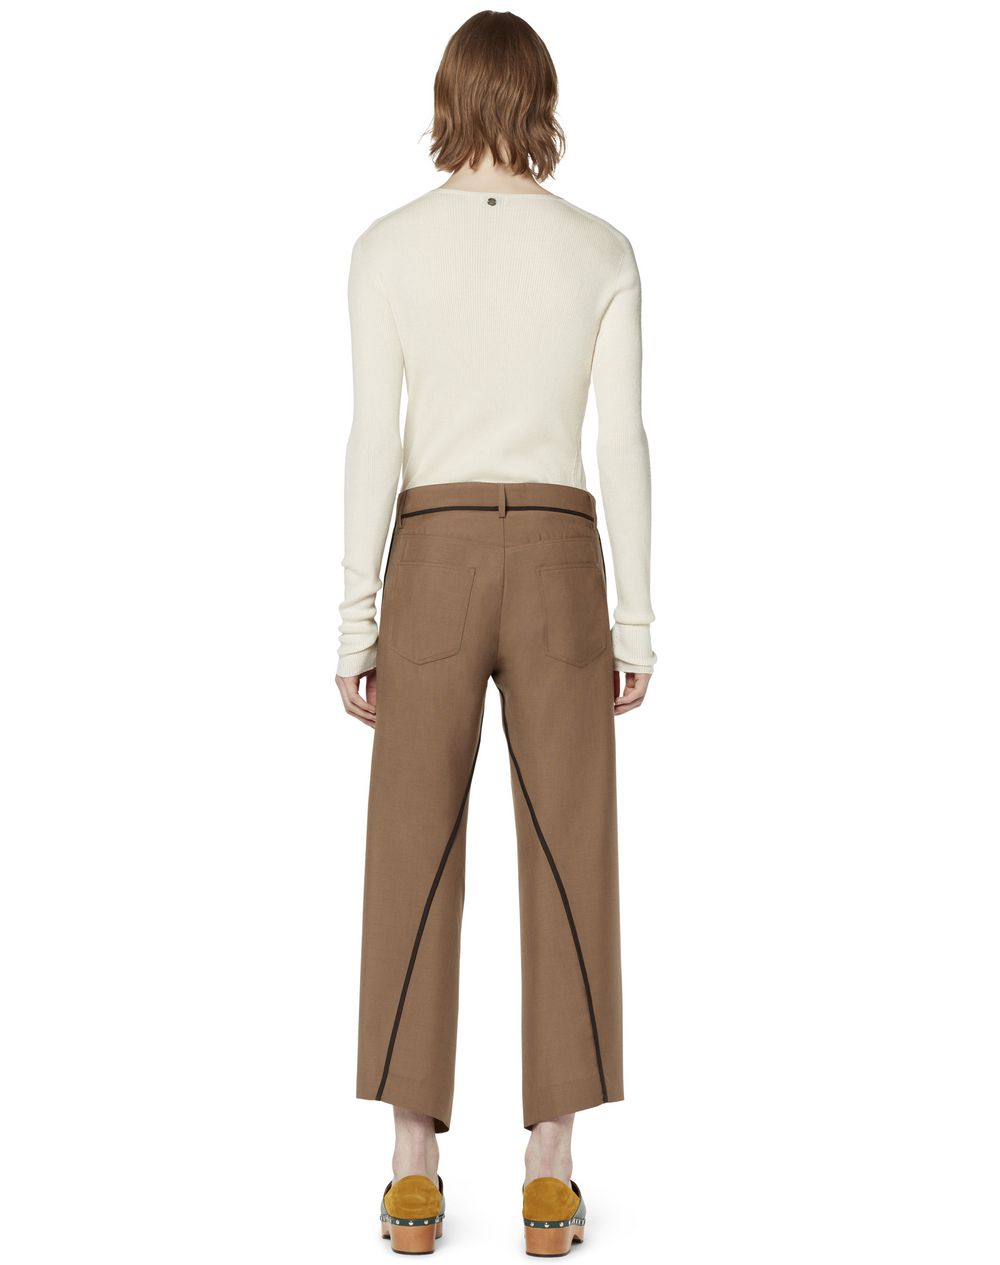 ASYMMETRICAL TROUSERS IN TOPSTITCHED WOOL - Lanvin